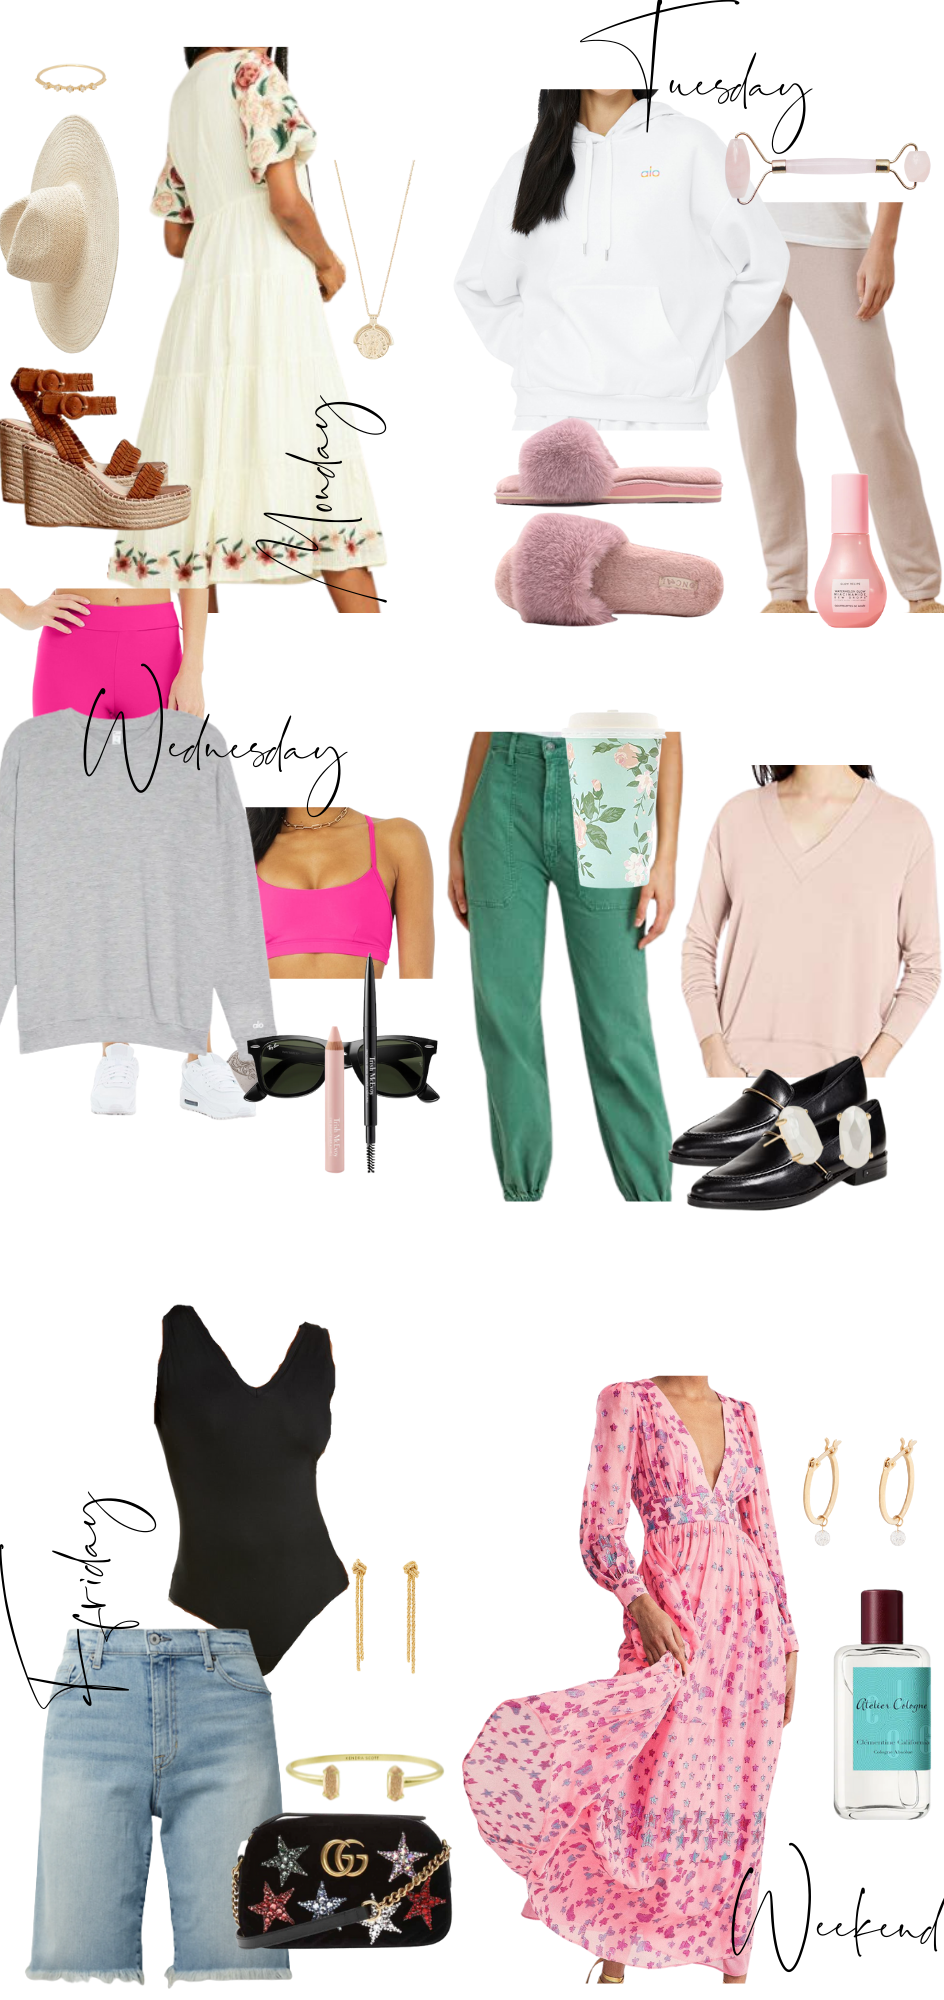 What to Wear by popular Monterey fashion blog, Haute Beauty Guide: collage image of a straw fedora hat, gold ring, brown strap espadrilles, gold coin necklace, cos quartz face roller, white hoodie sweatshirt, pink faux fur slippers, light pink jogger pants, pink leggings, cream floral embroidered dress, pink sports bra, grey sweater, black frame sunglasses, green pants, pink v-neck sweater, black loafers, black eyeliner, Kendra Scott earrings, pink lip liner, pink star print maxi dress, Gucci glitter star purse, denim Bermuda shorts, gold bracelet, gold chain statement earrings, black one piece swimsuit, and re-useable floral print coffee cup.